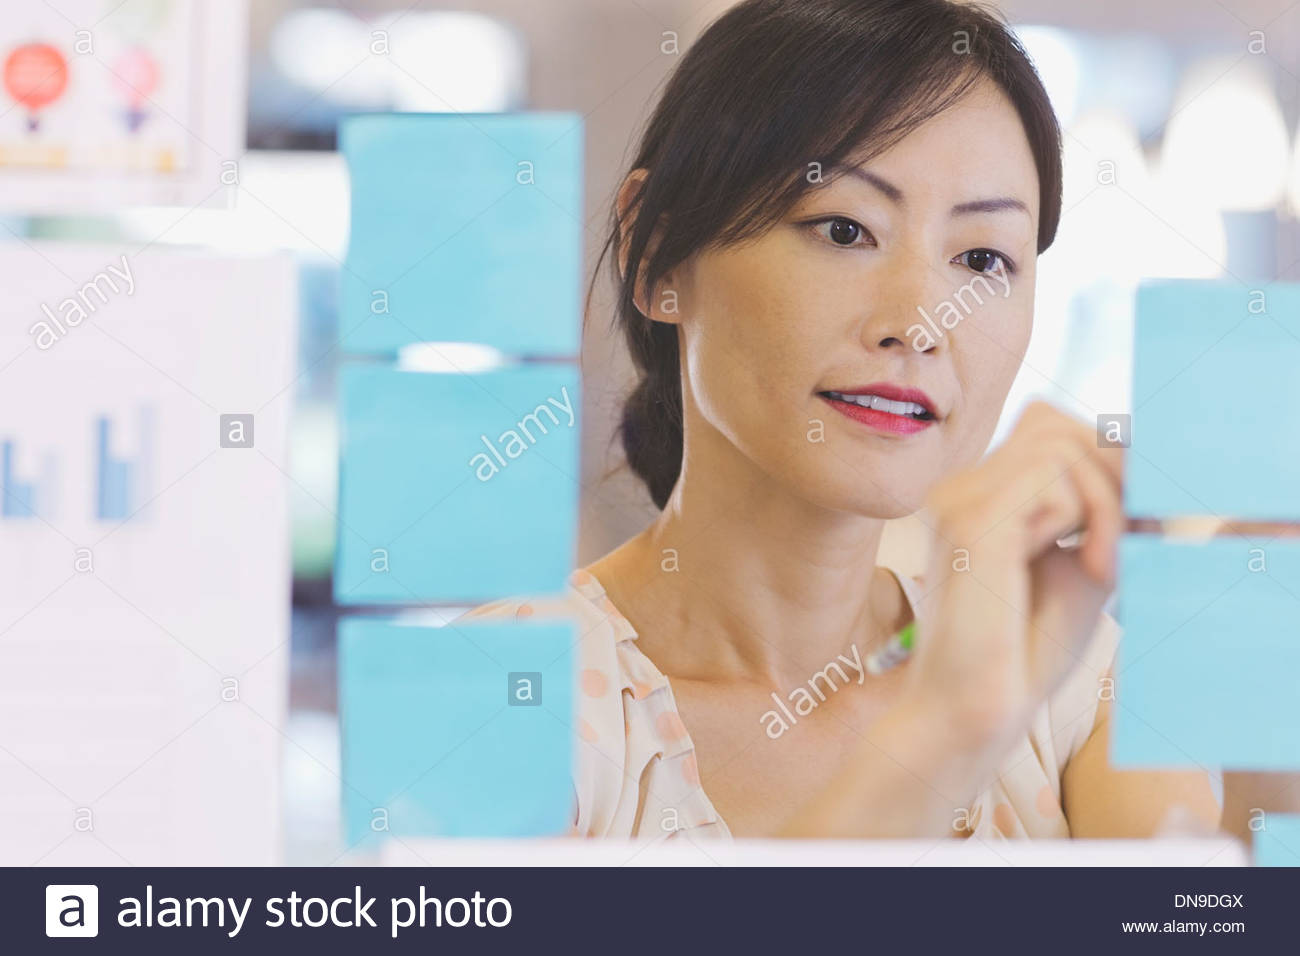 Businesswoman writing on adhesive notes in office - Stock Image